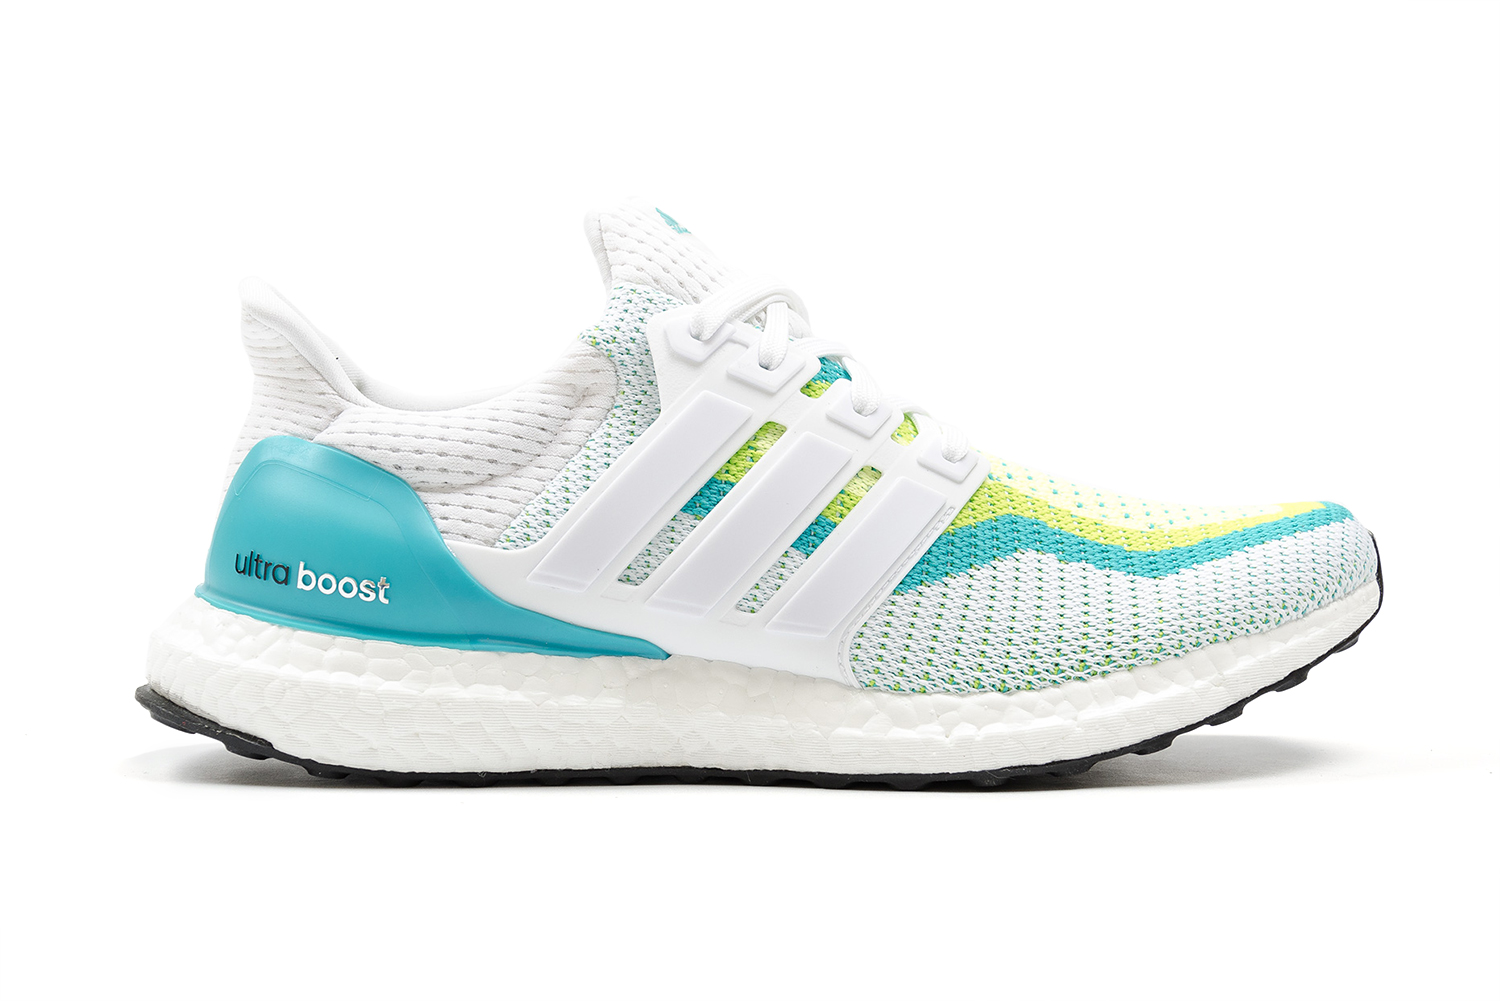 The adidas Ultra Boost Dons Summery Hues This Spring